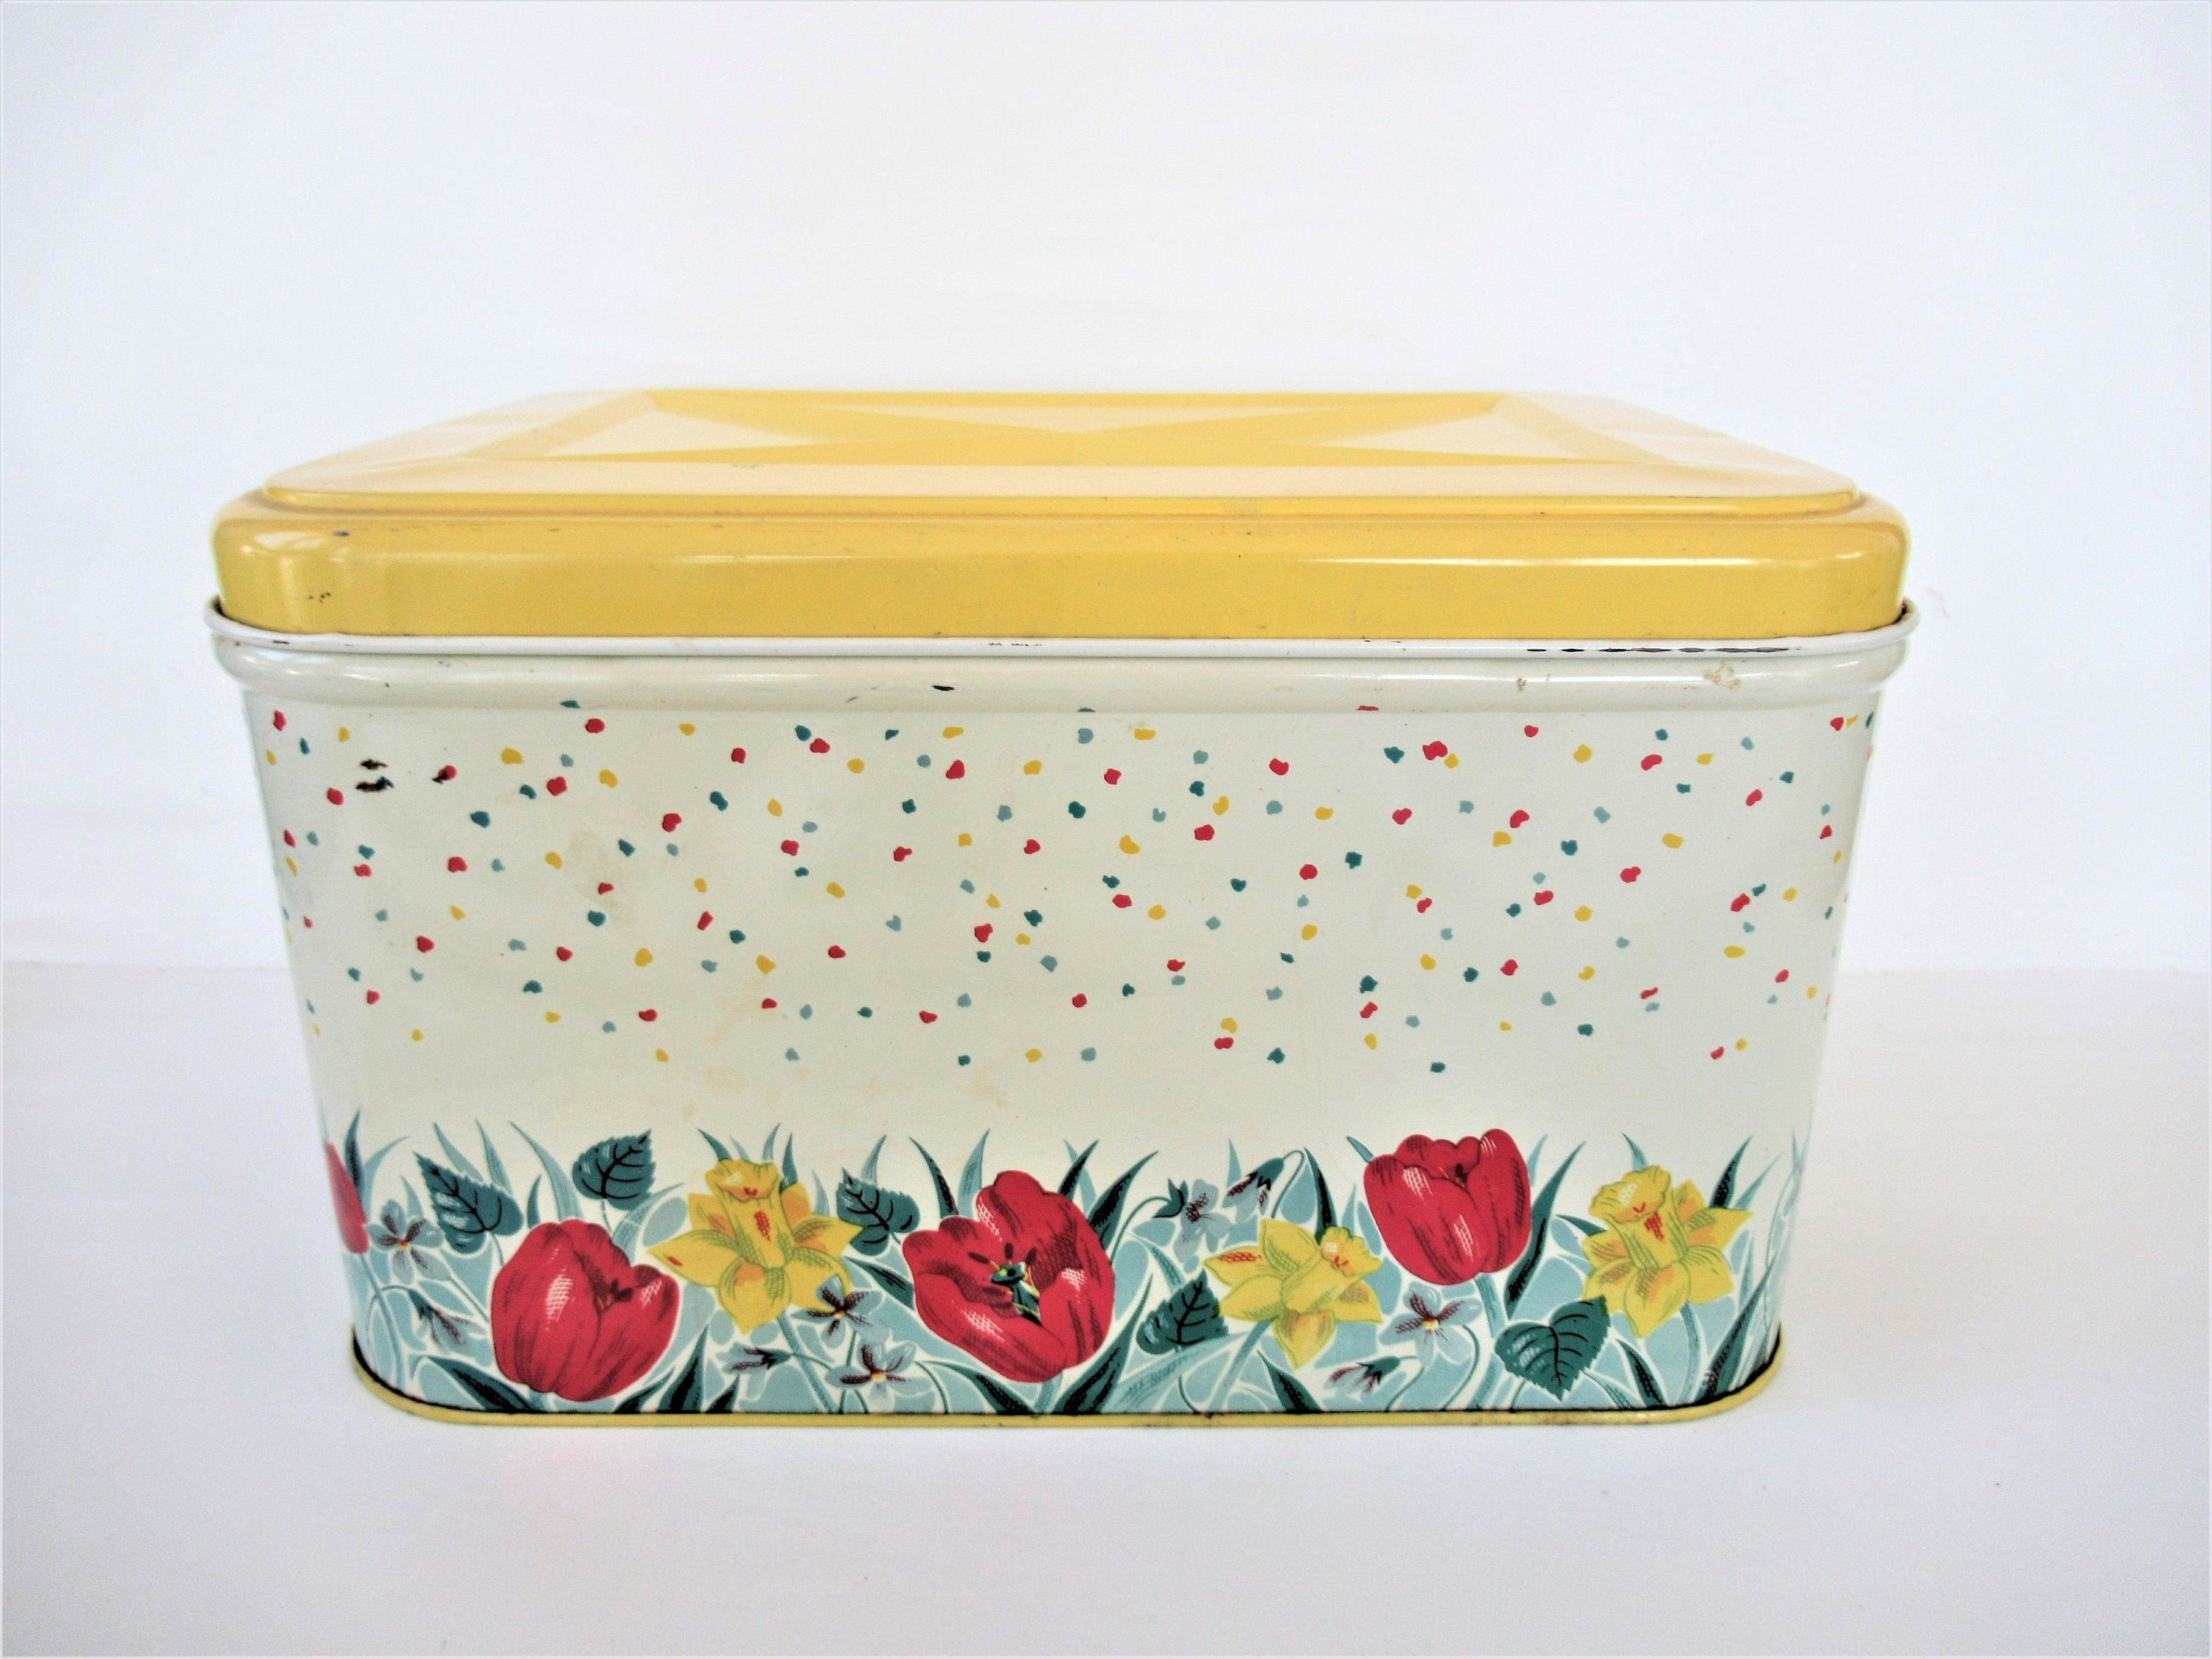 Vintage Colorware Metal Bread Box Large Picnic Tin Basket Yellow Red Green Tulips Daffodils Mid Century Hinged Top Storage Bin 13x10x8 Mid Century Storage Red Green Storage Bin